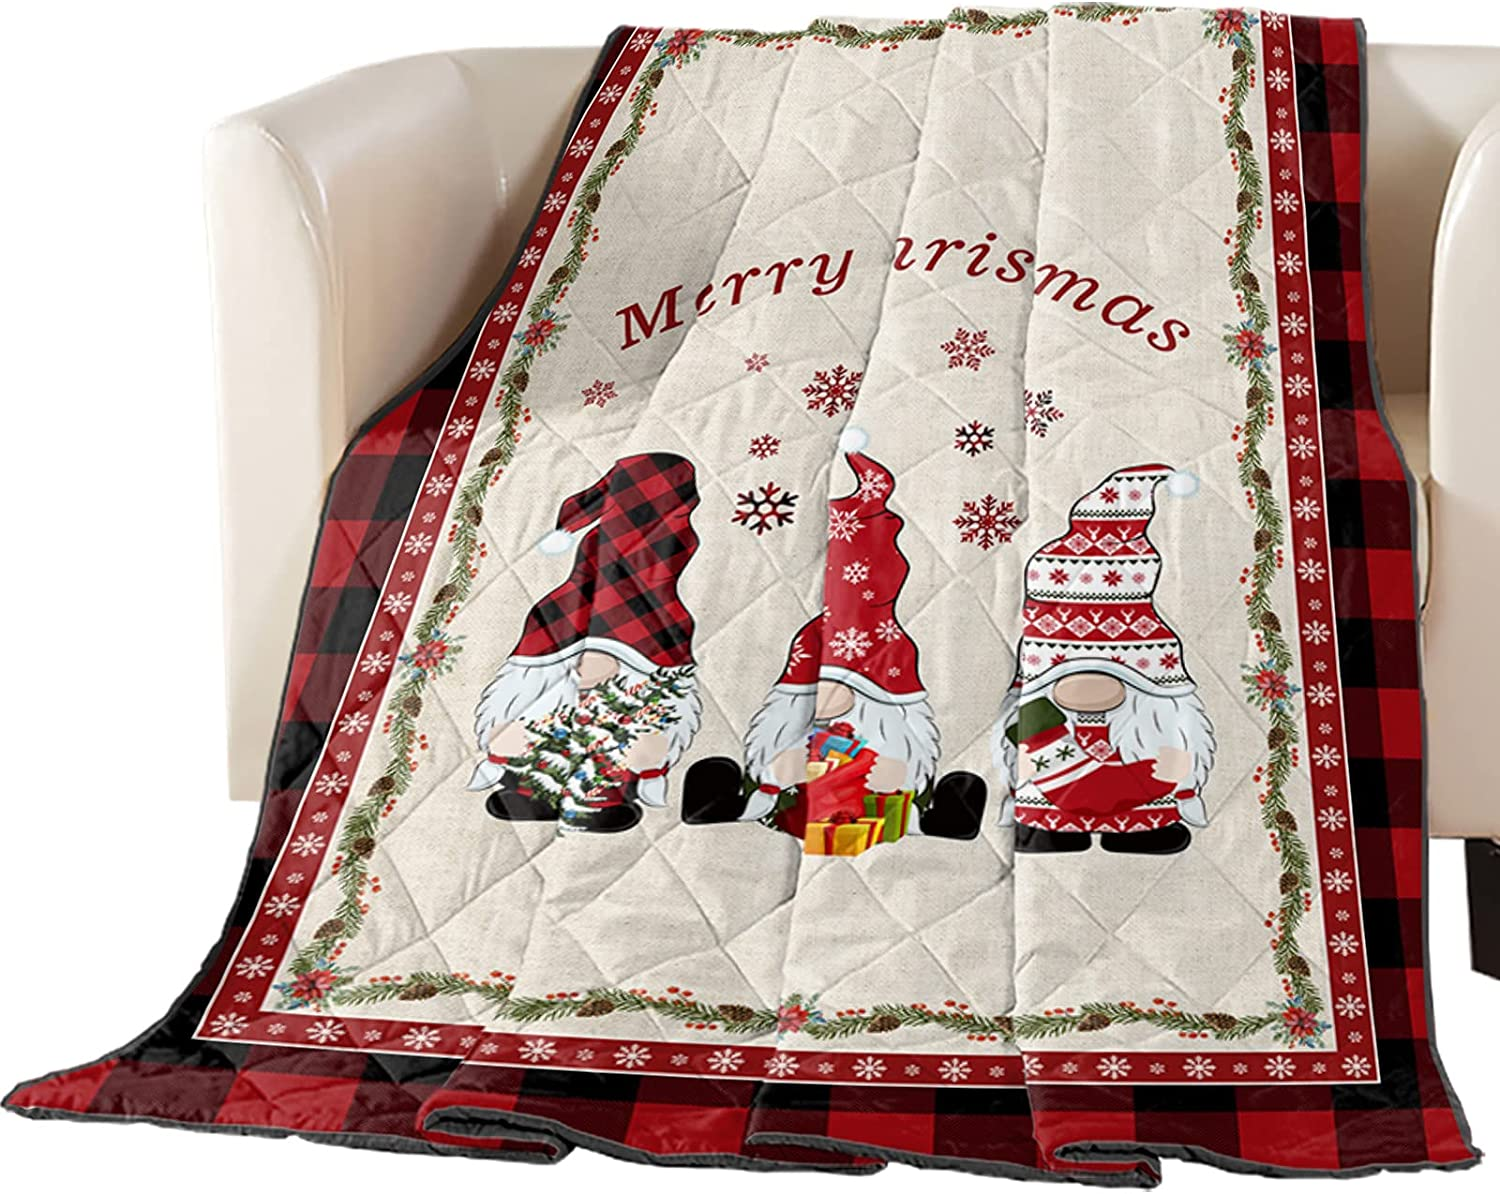 Luck latest Cheap bargain Sky Premium Coverlet Diamond Quilted 64x88in Stitched Chirs